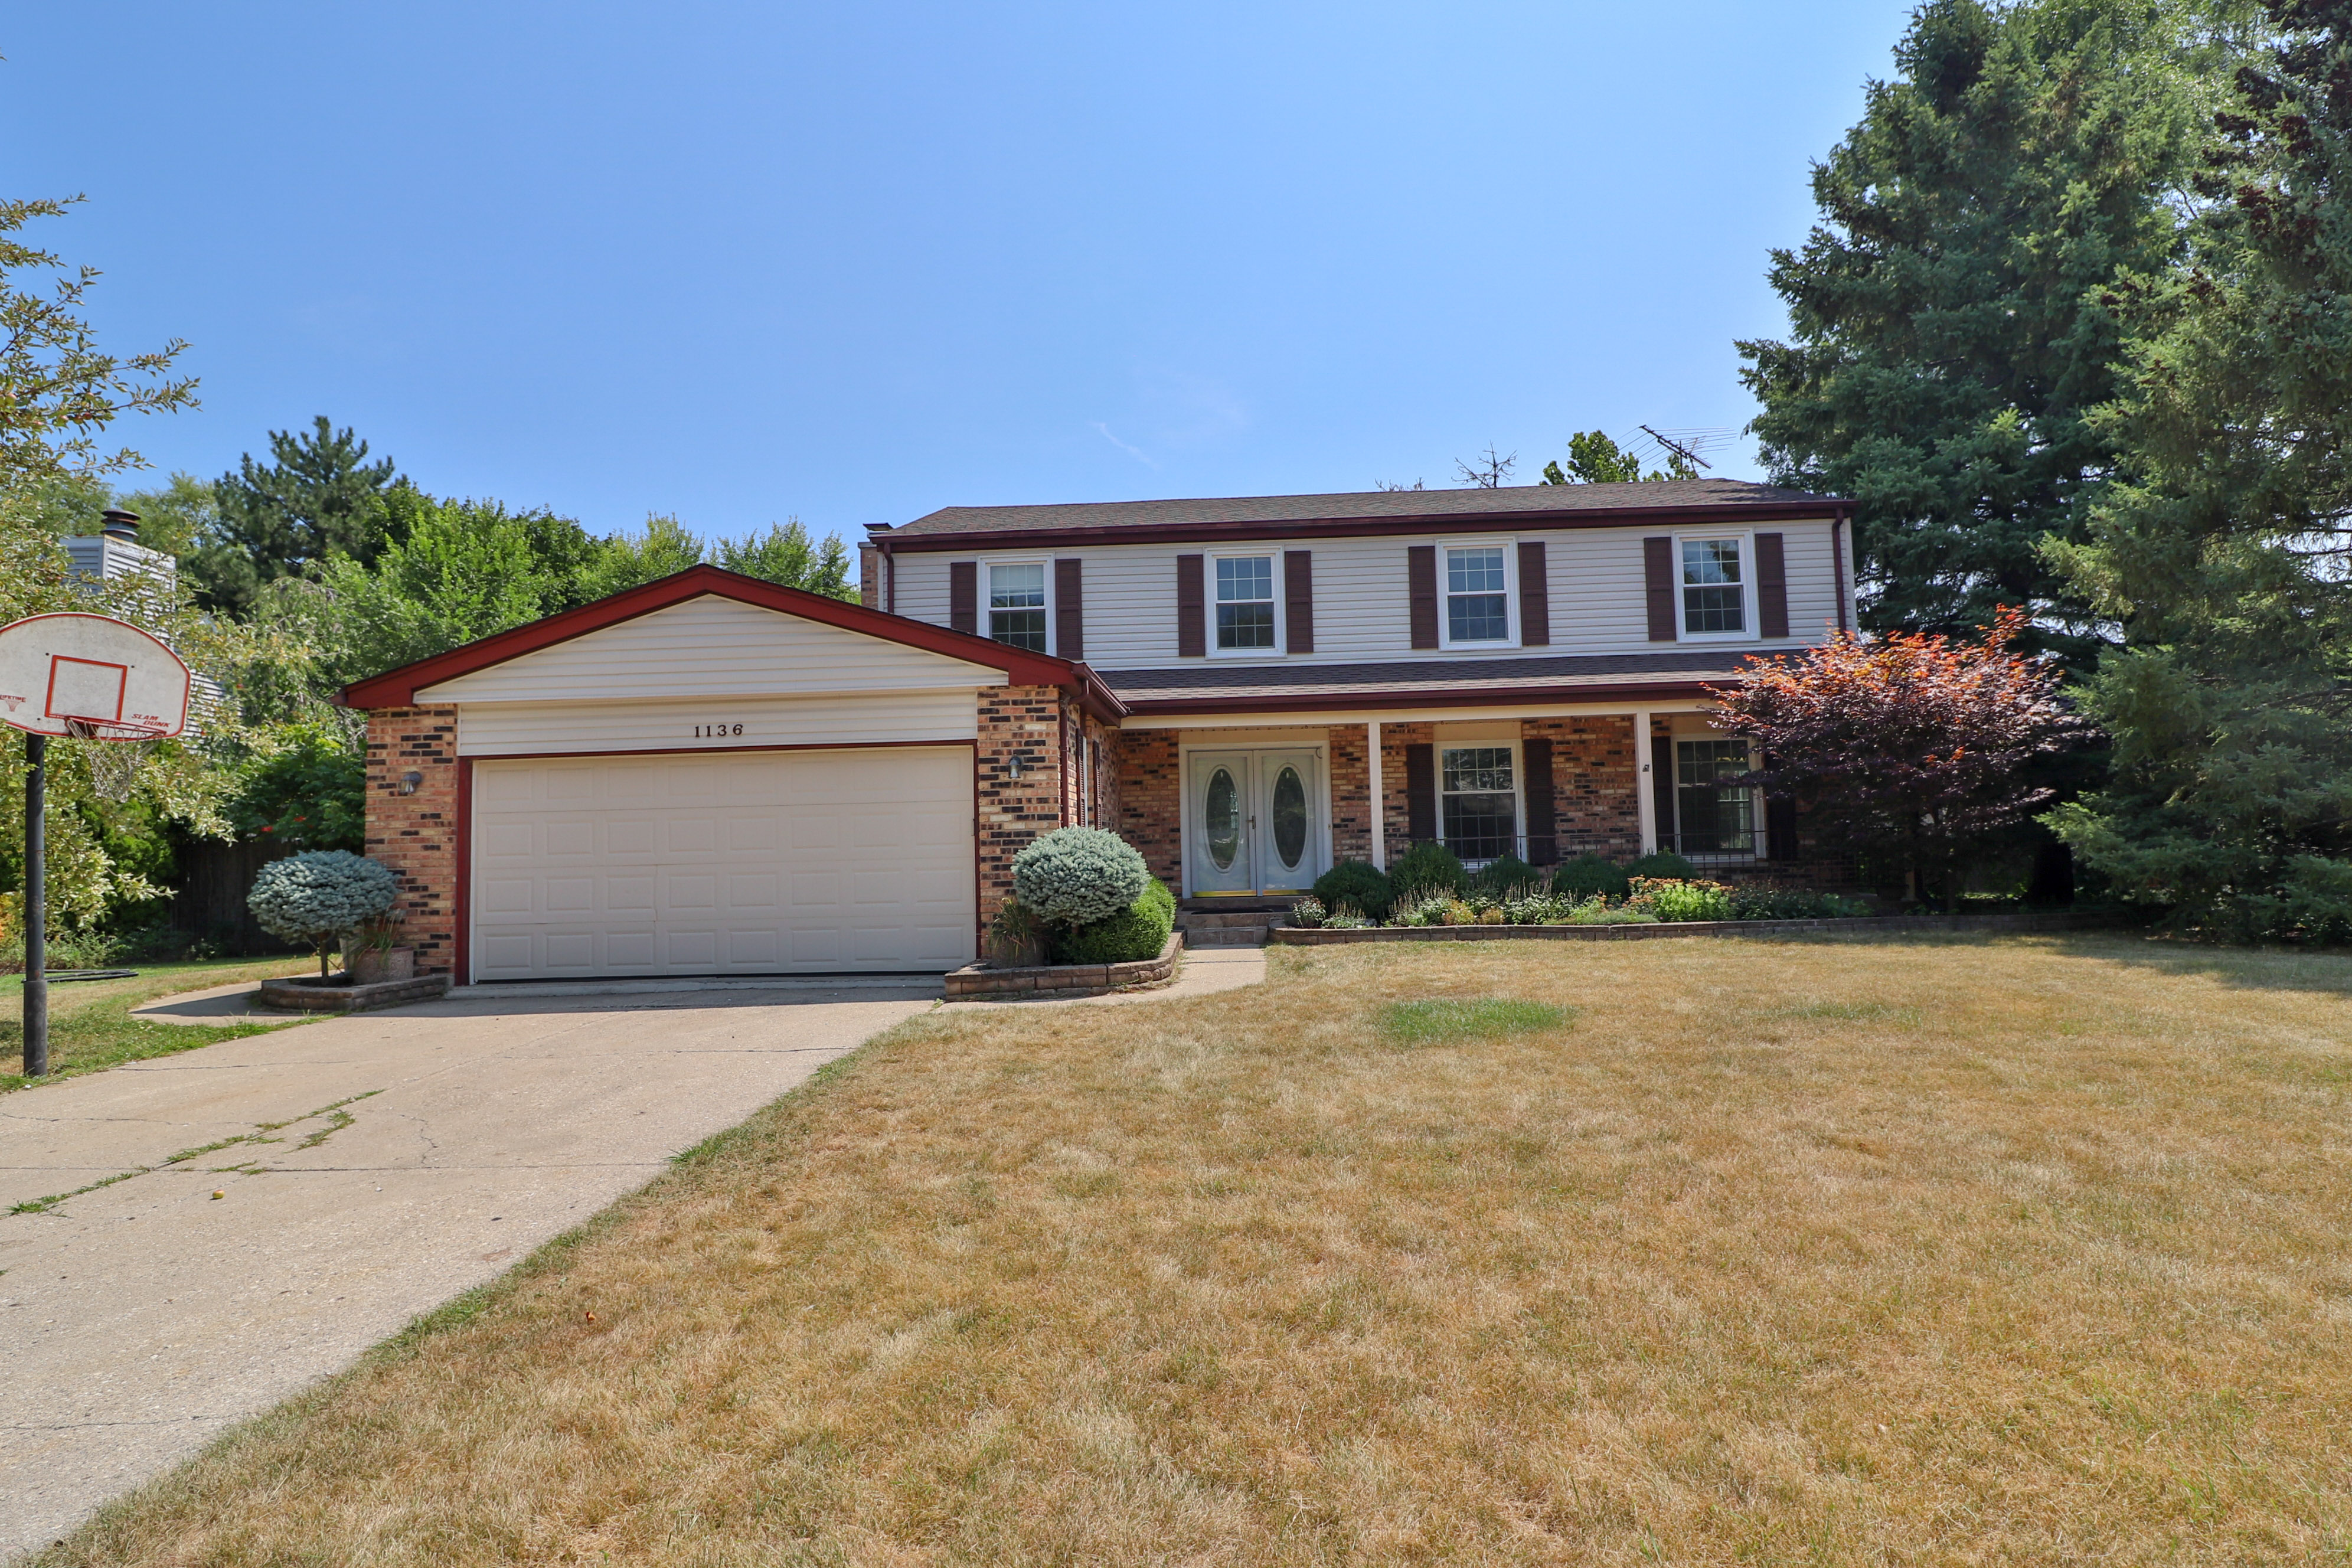 Photo of 1136 Tamarack Ln, Libertyville, IL, 60048